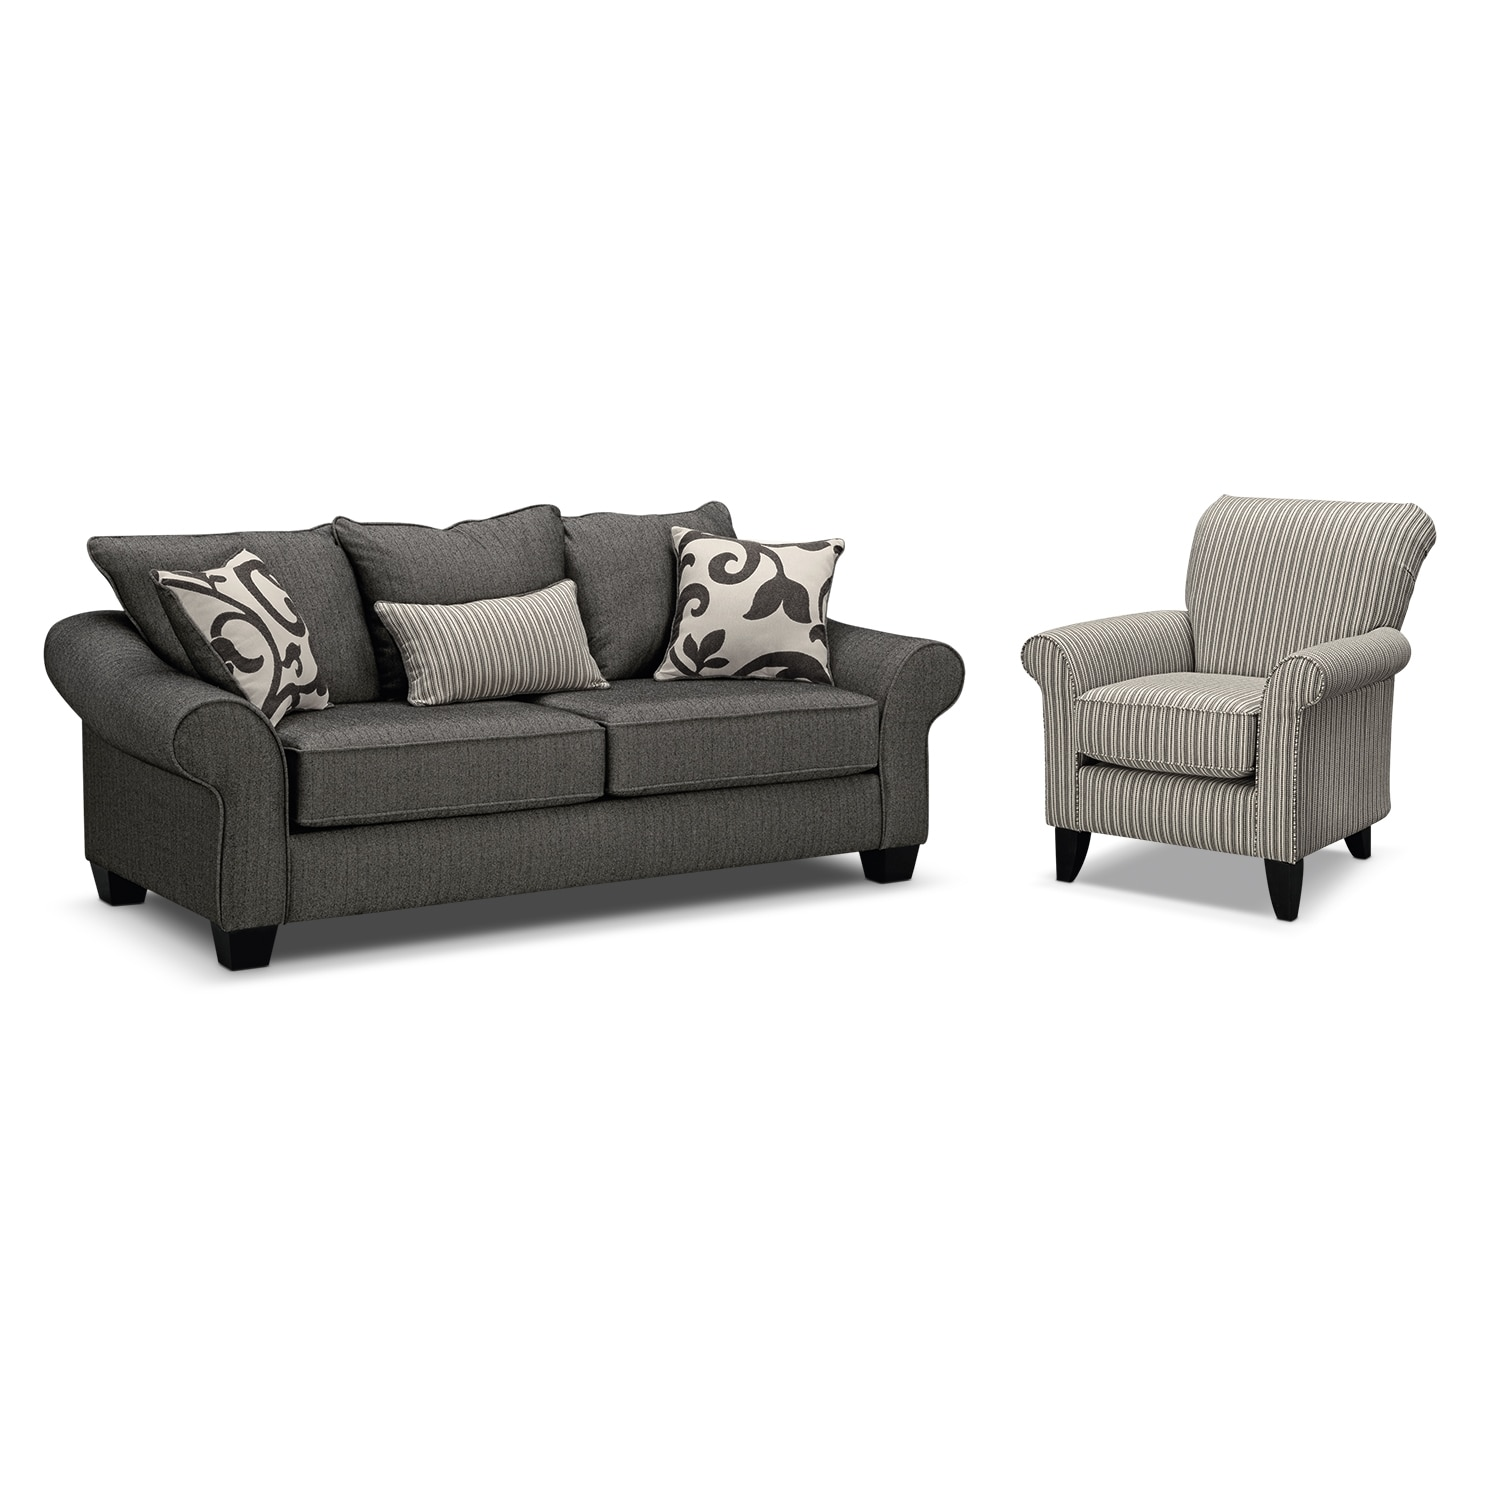 Living Room Furniture - Colette Full Innerspring Sleeper Sofa and Accent Chair Set - Gray